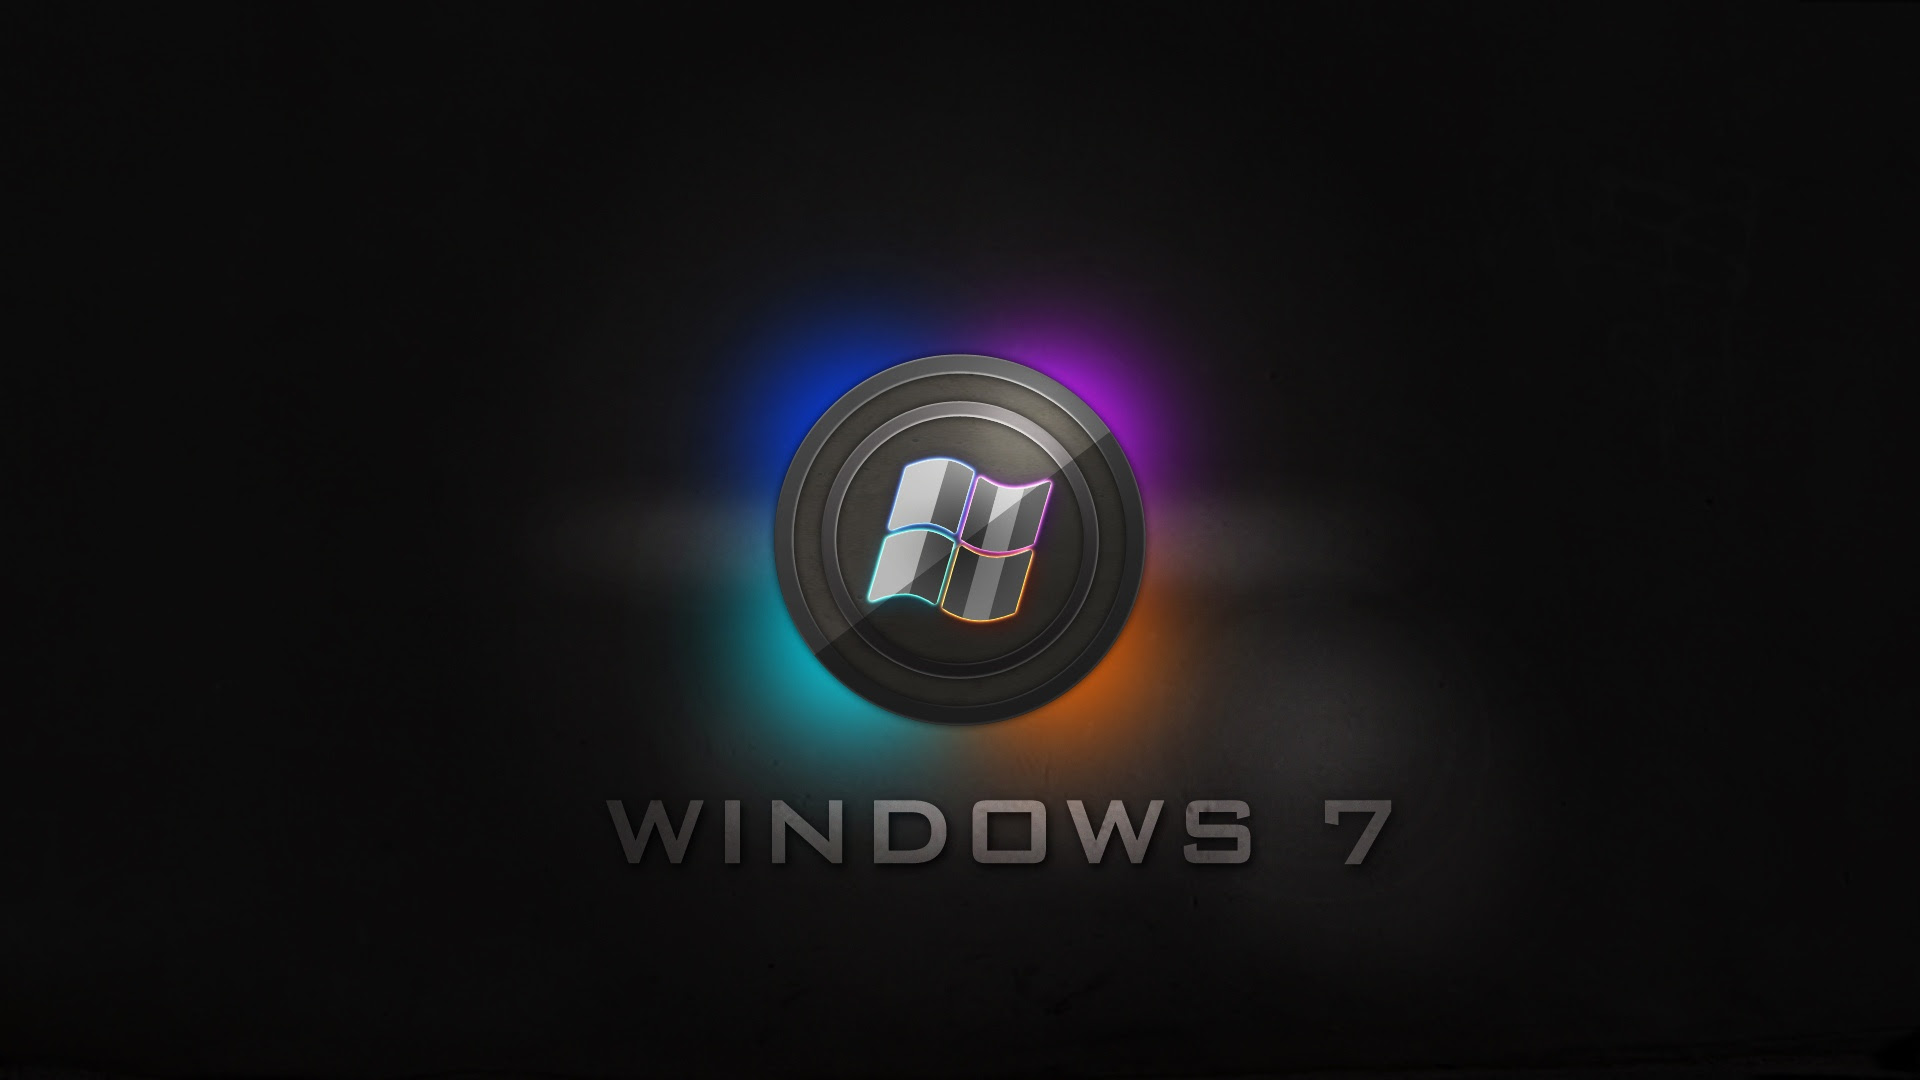 Windows 7 Colorful Light Wallpapers 1920x1080 191512